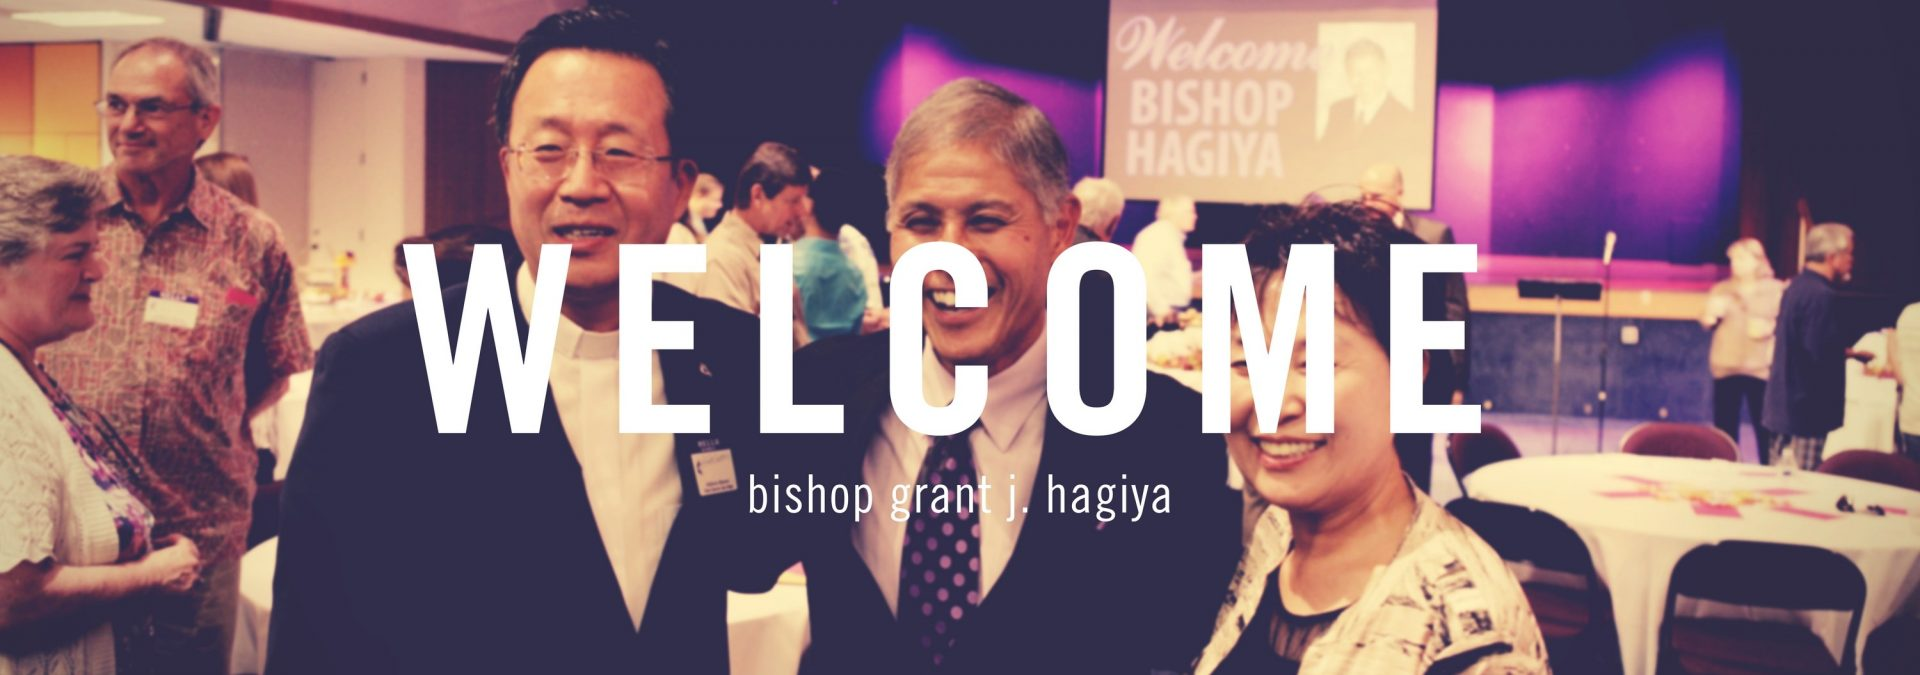 welcome-banner-web